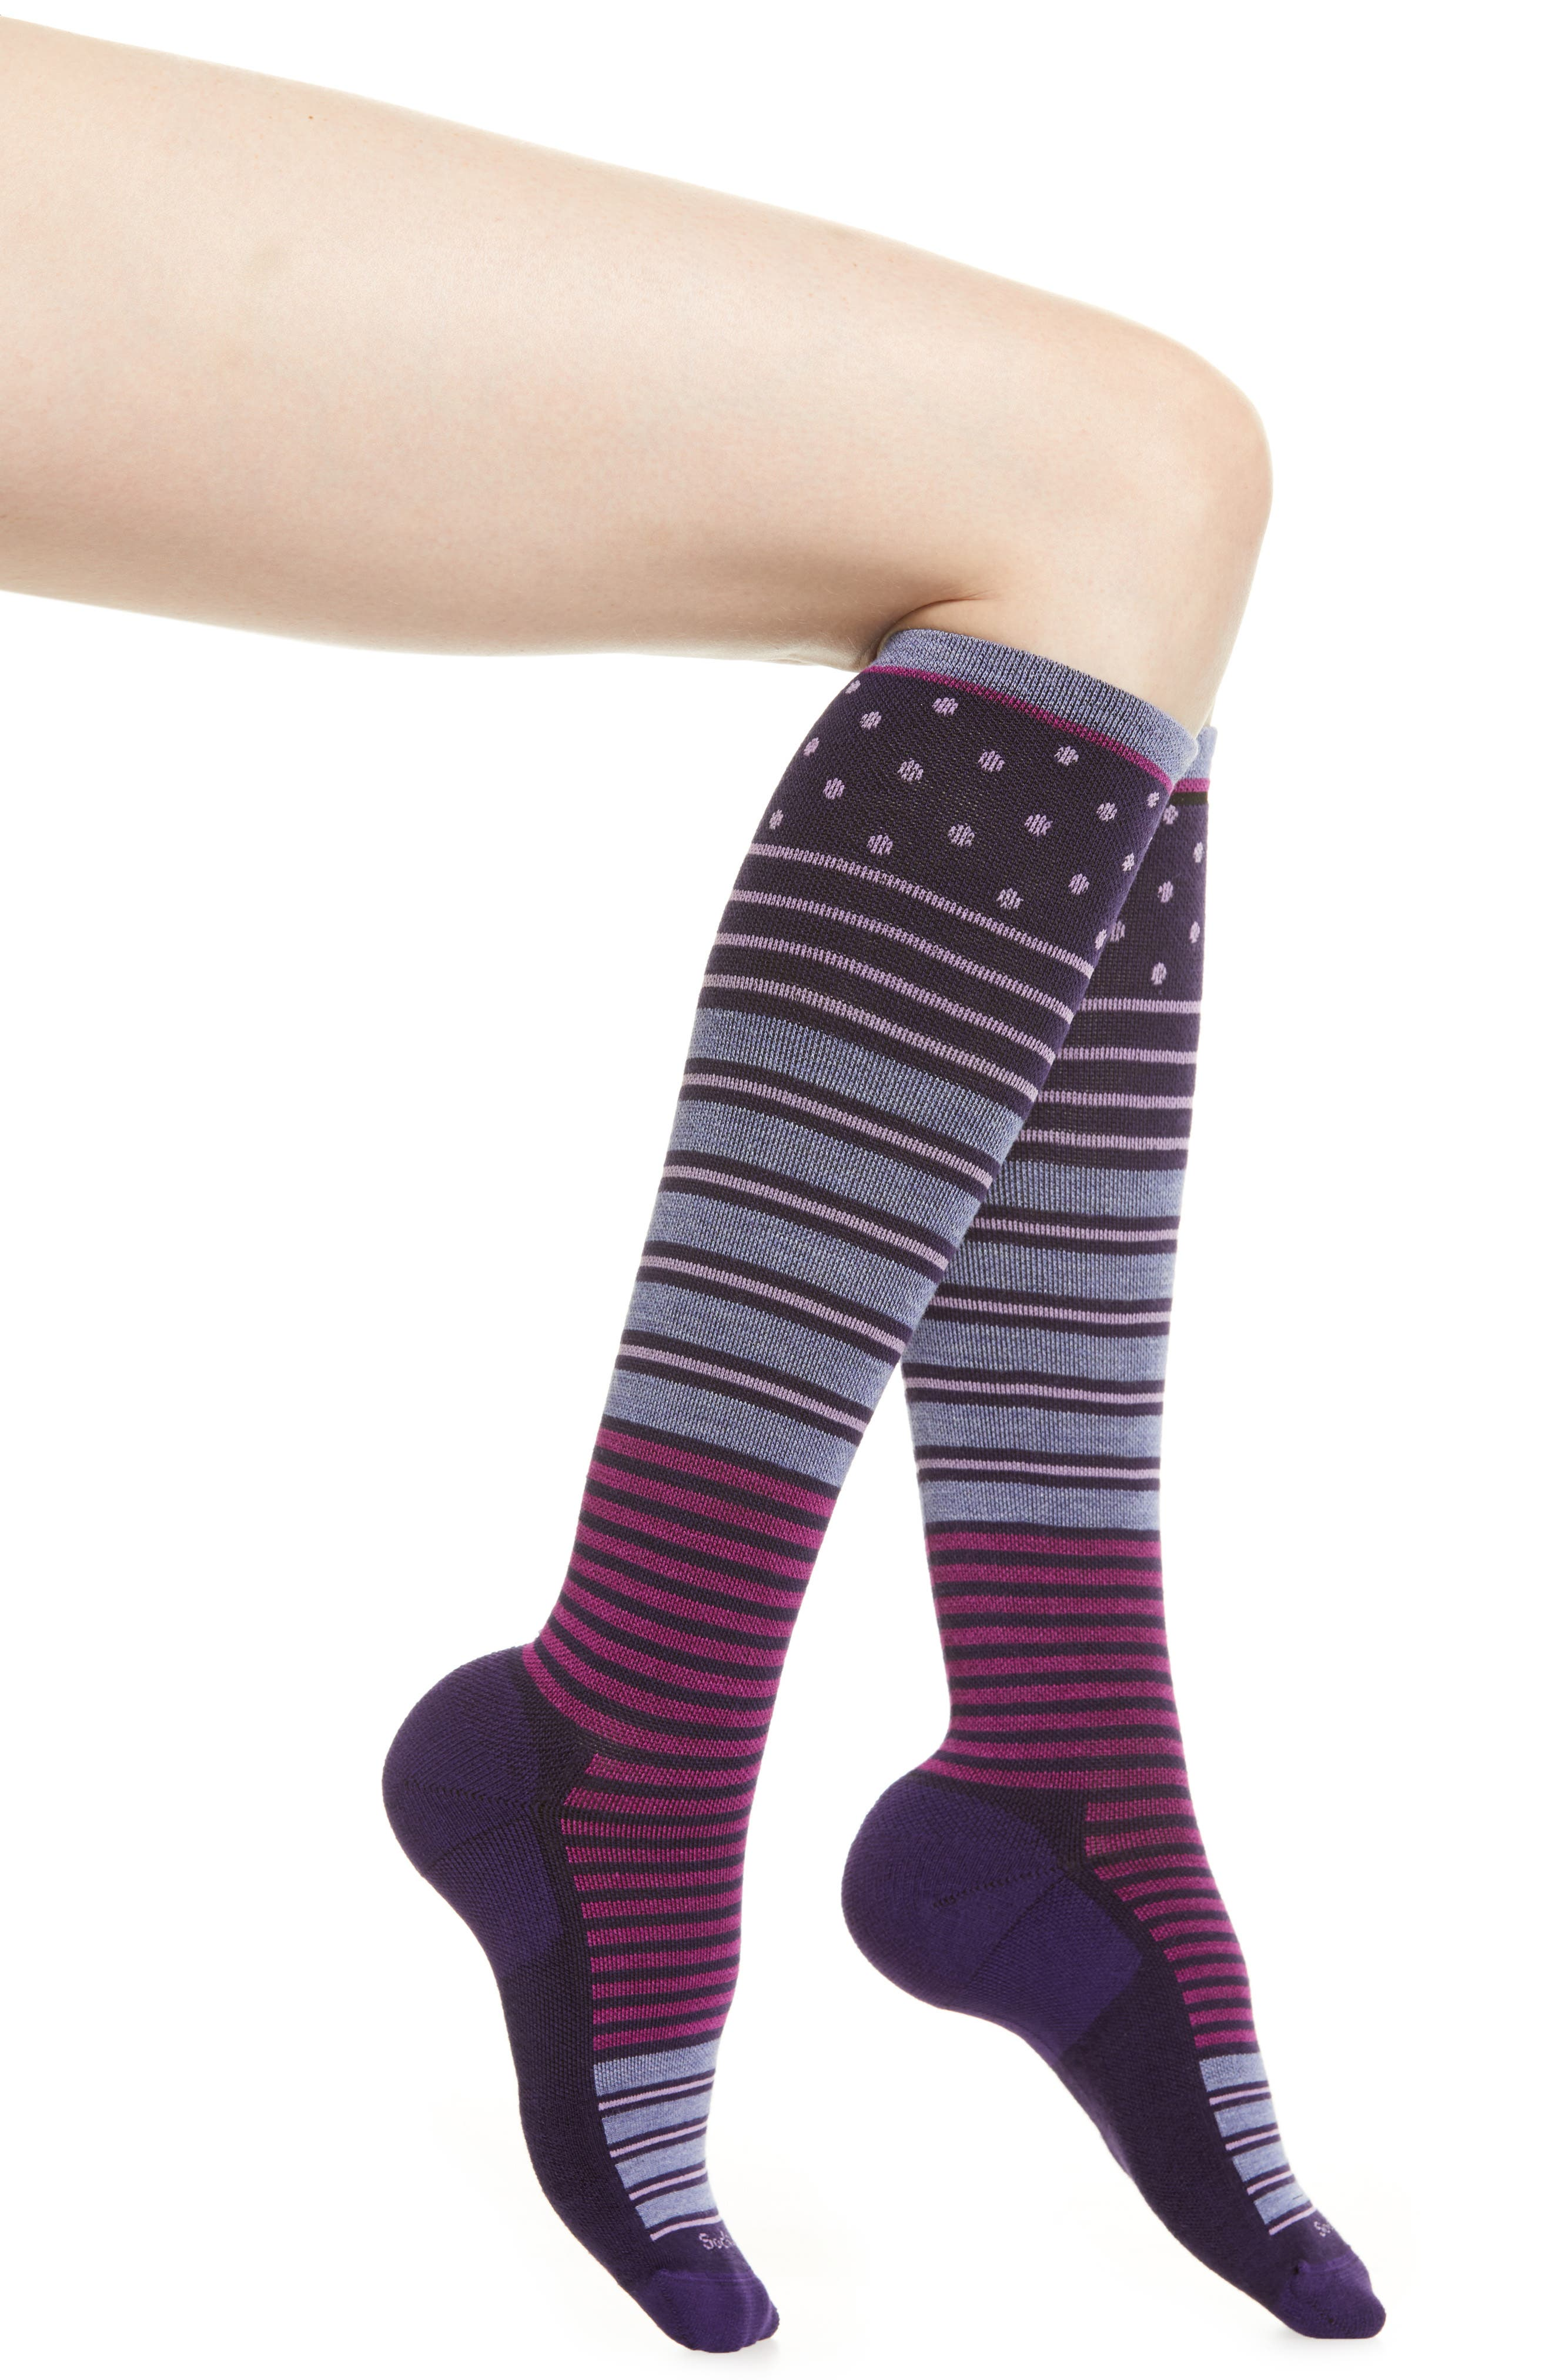 'Twister' Merino Wool Blend Compression Socks,                             Main thumbnail 1, color,                             CONCORDE